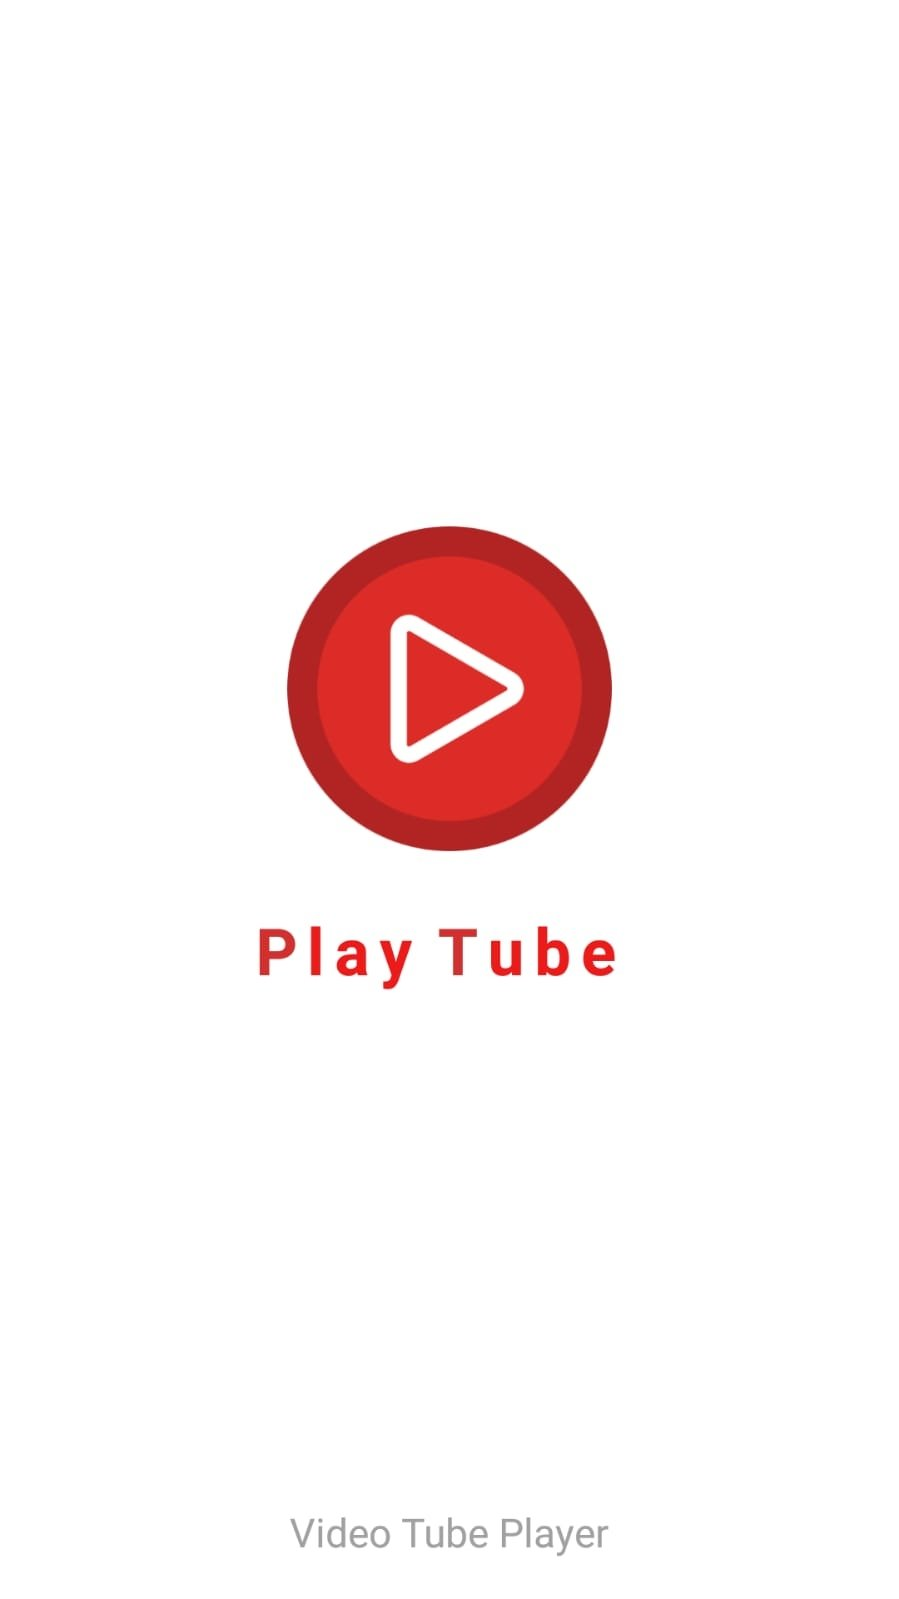 Play Tube Android image 8